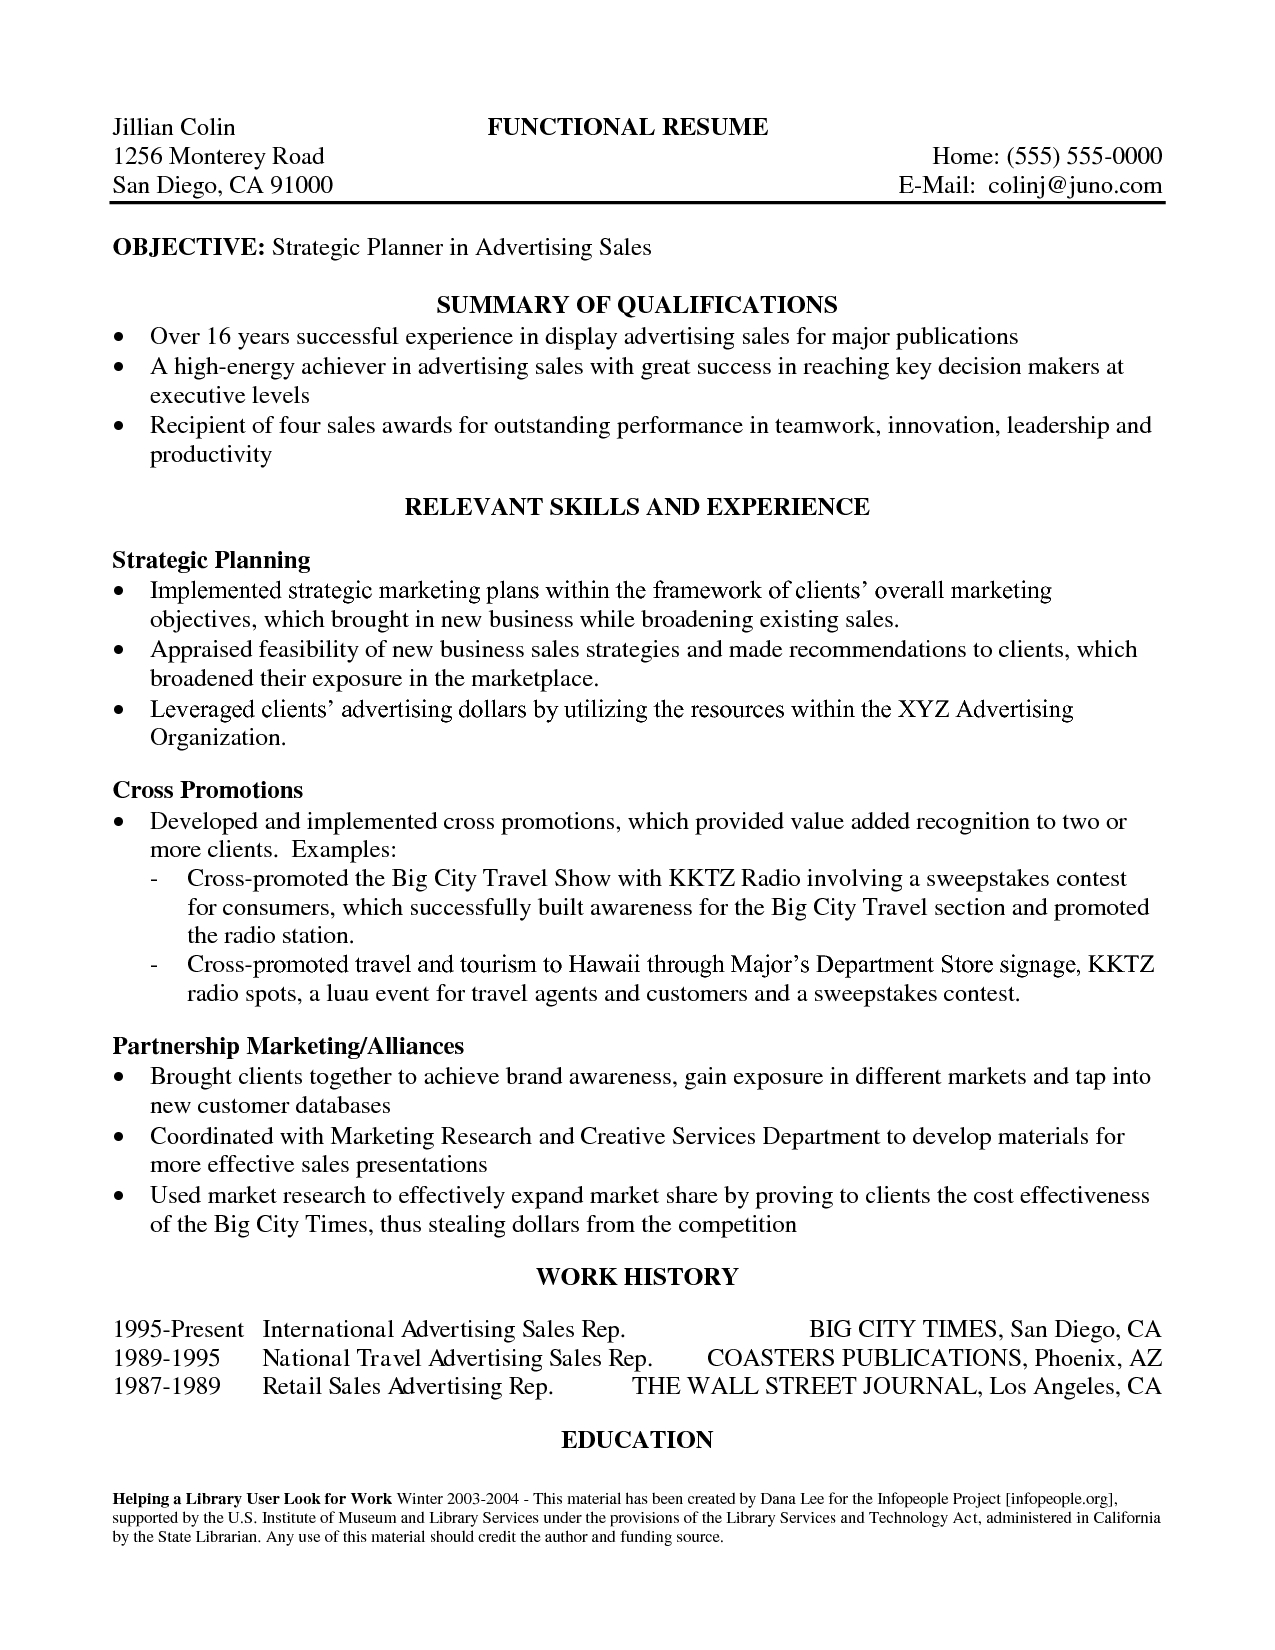 Samples Of Resume Summary What Is A Summary Of Qualifications